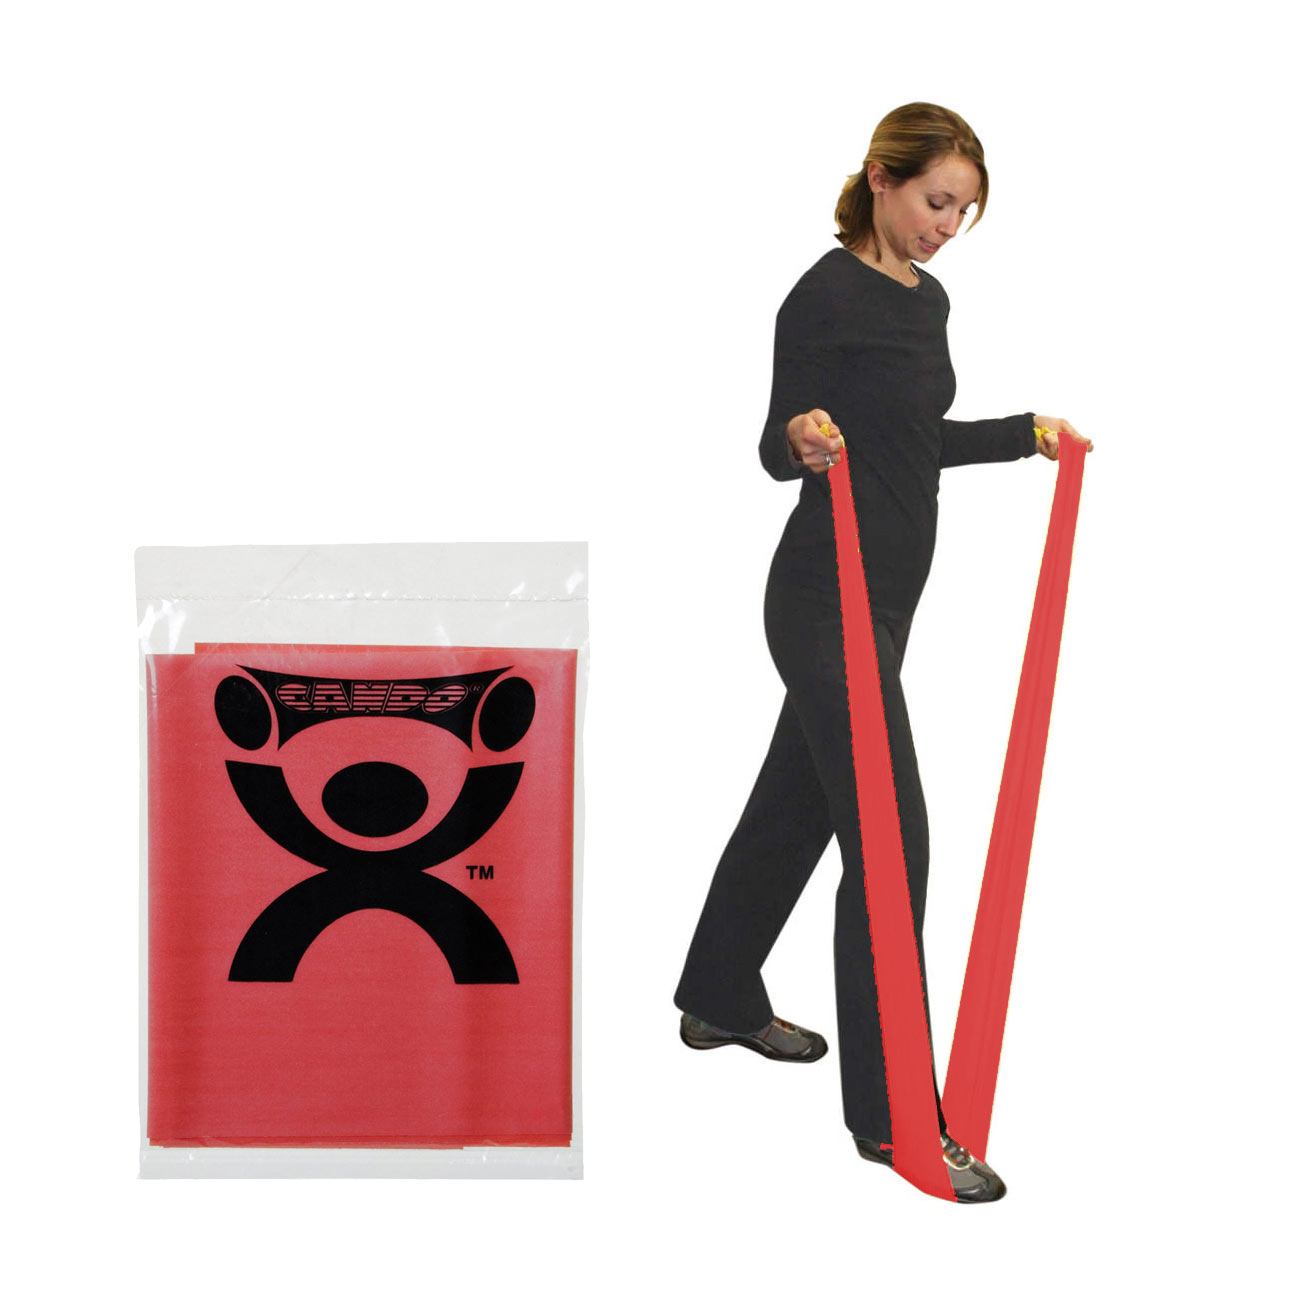 CanDo Latex Free Exercise Band - 4-ft. - Red - Light Intensity